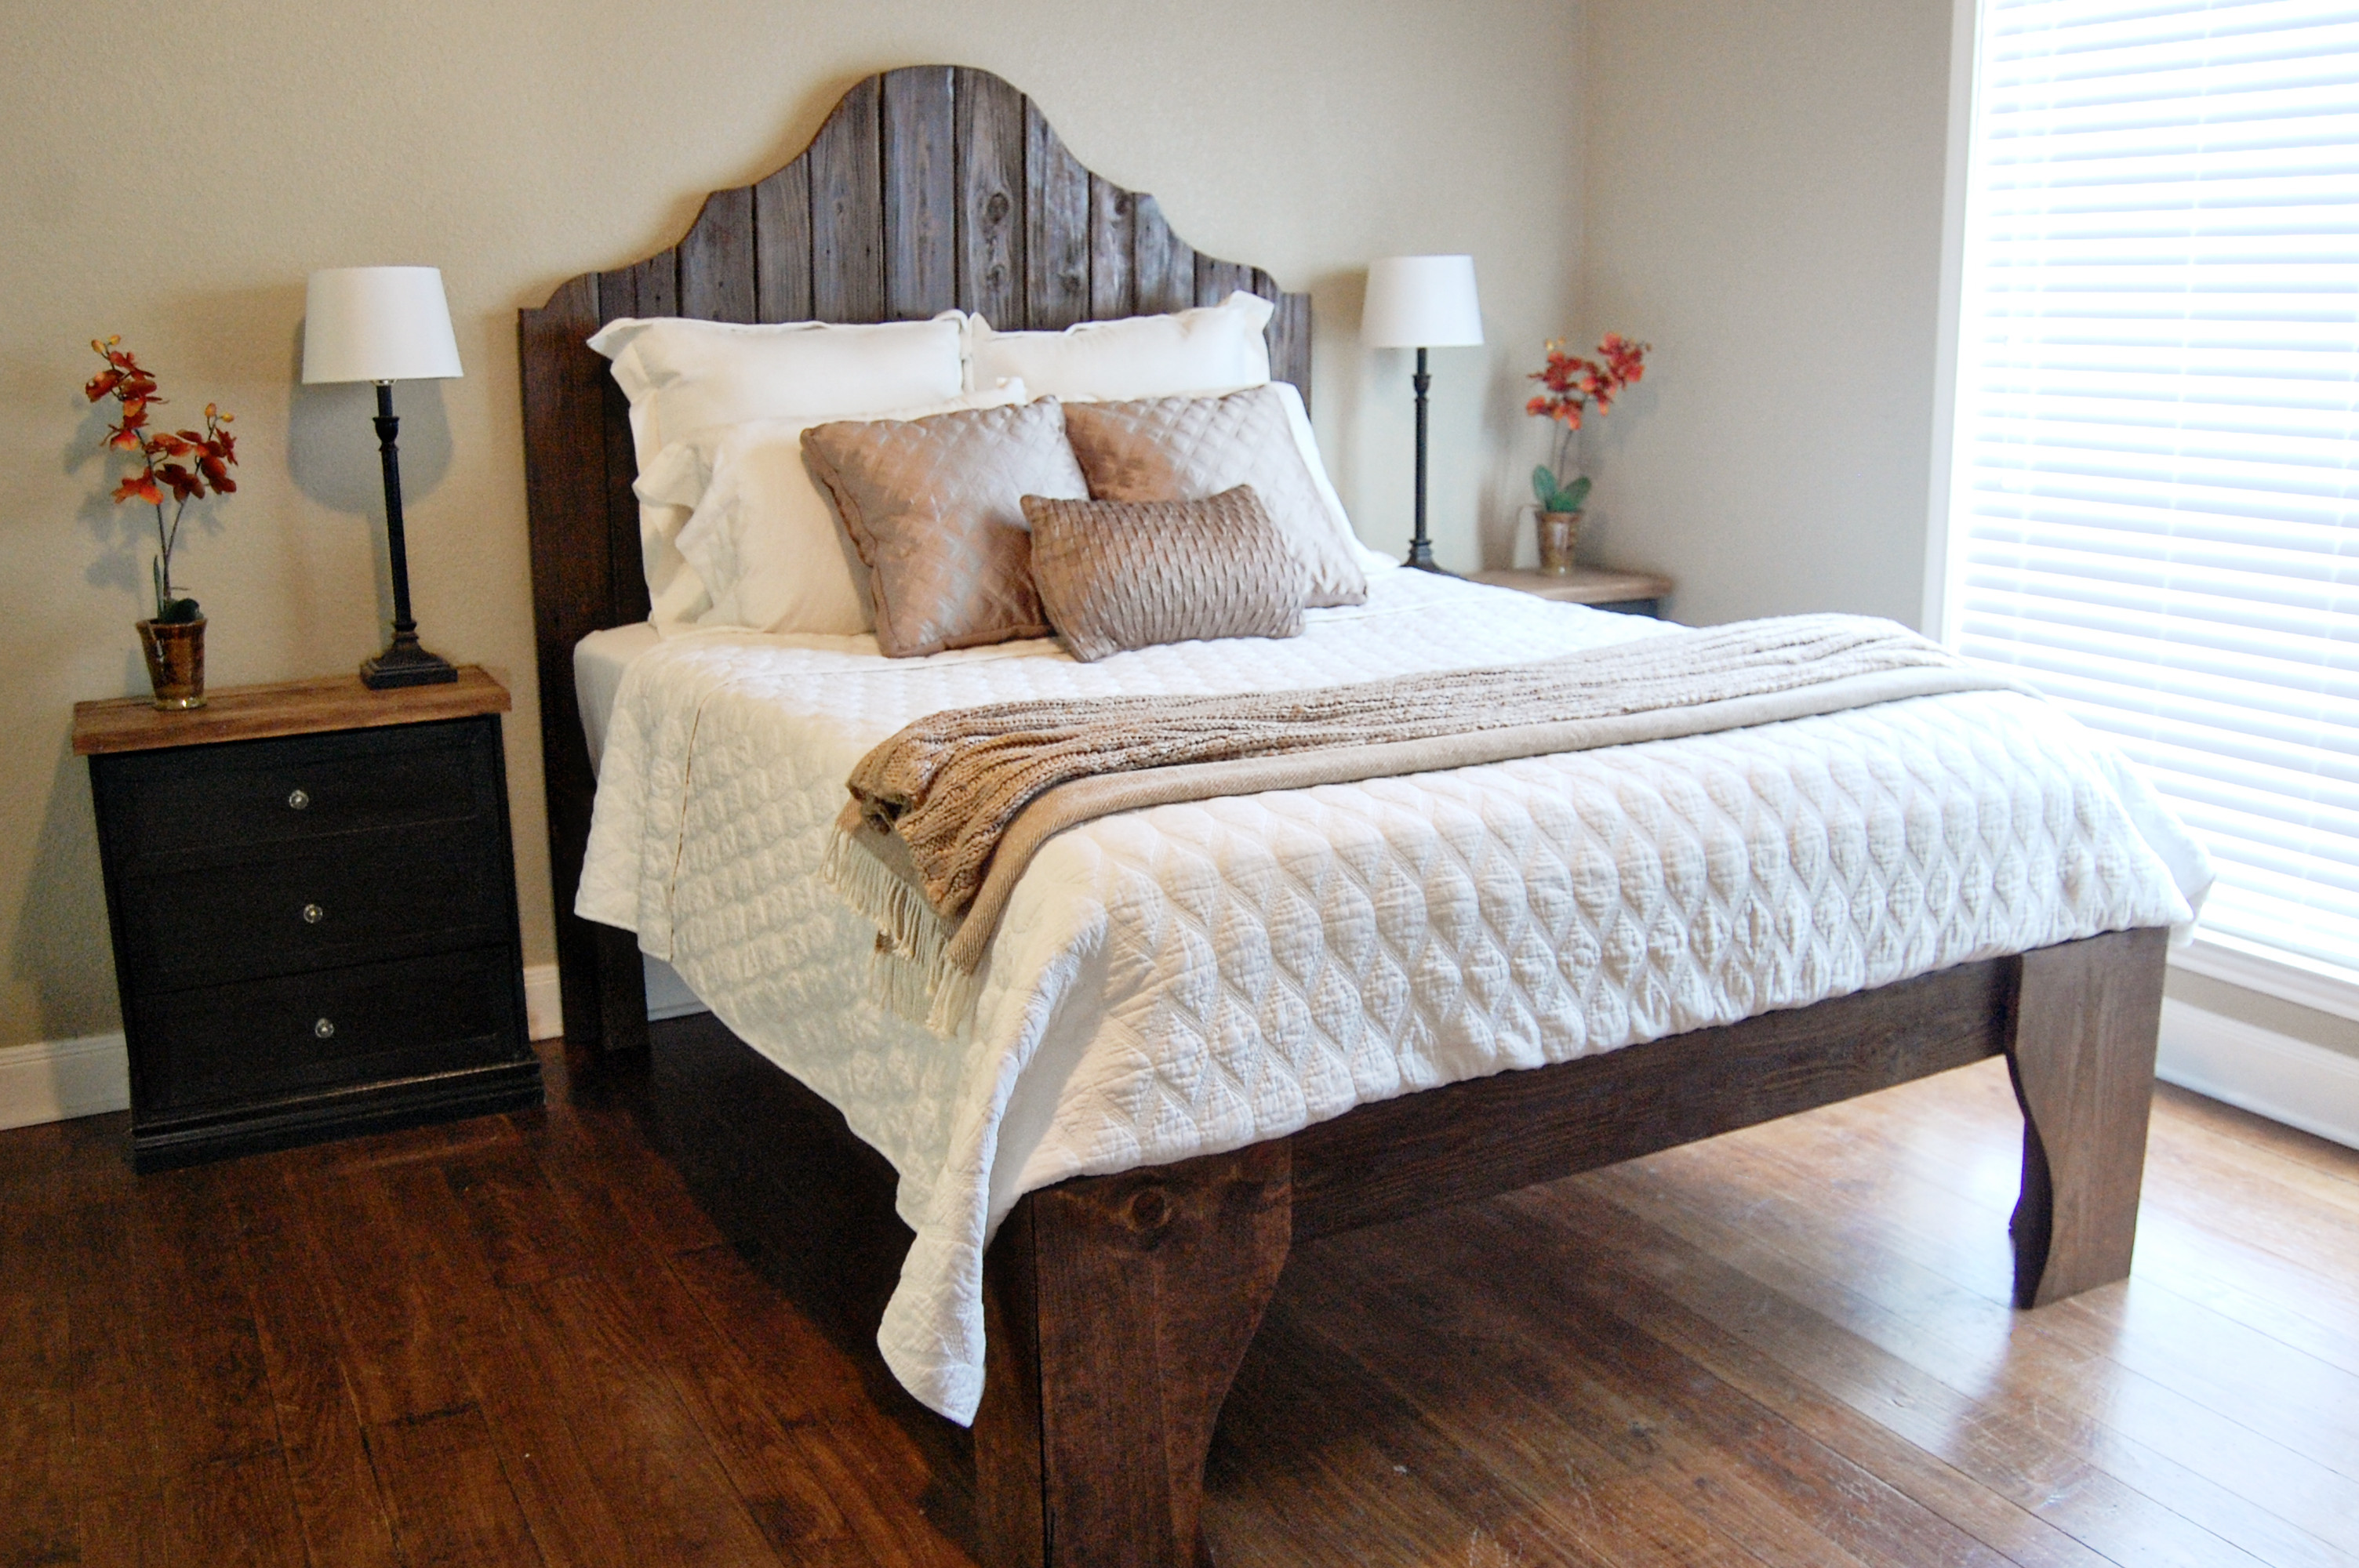 Best ideas about Bed Frame DIY . Save or Pin 21 DIY Bed Frames To Give Yourself The Restful Spot of Now.